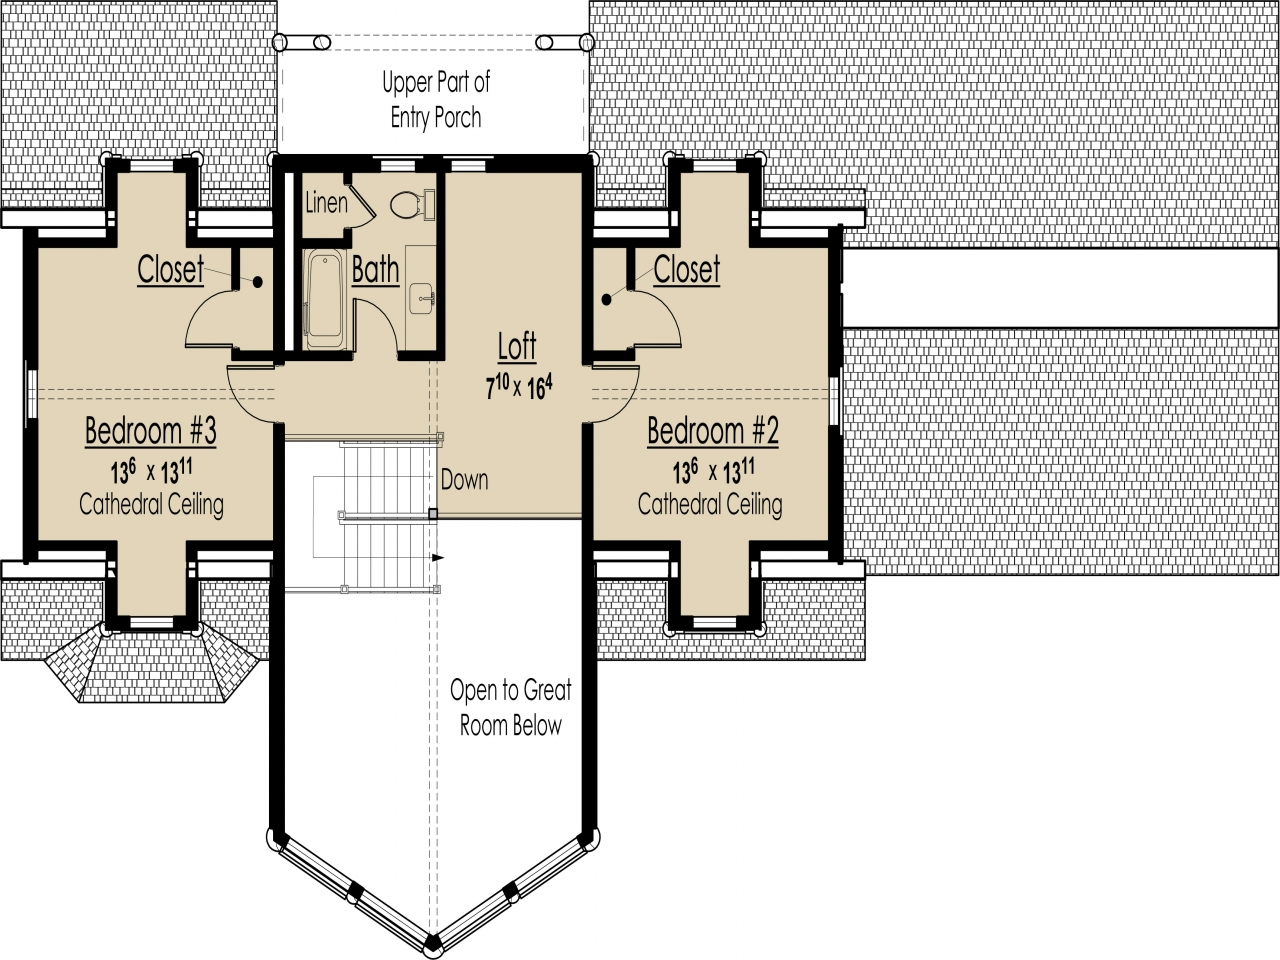 Energy efficient home design features energy efficient for Energy efficient house plans designs